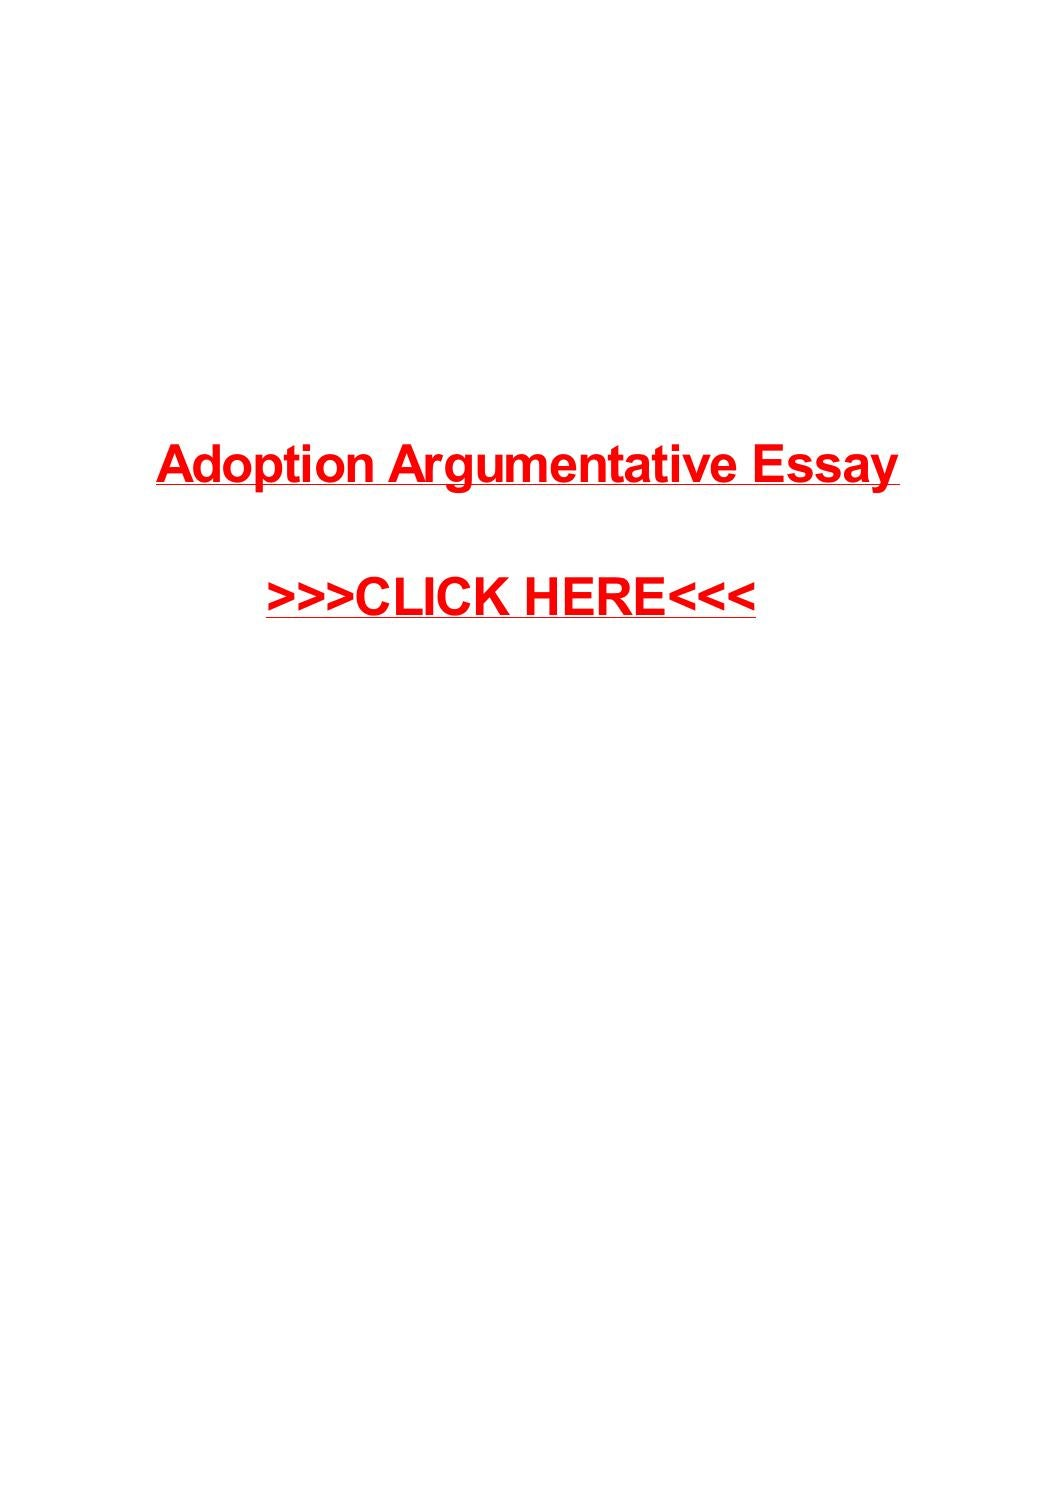 adoption argumentative essay by pilon issuu